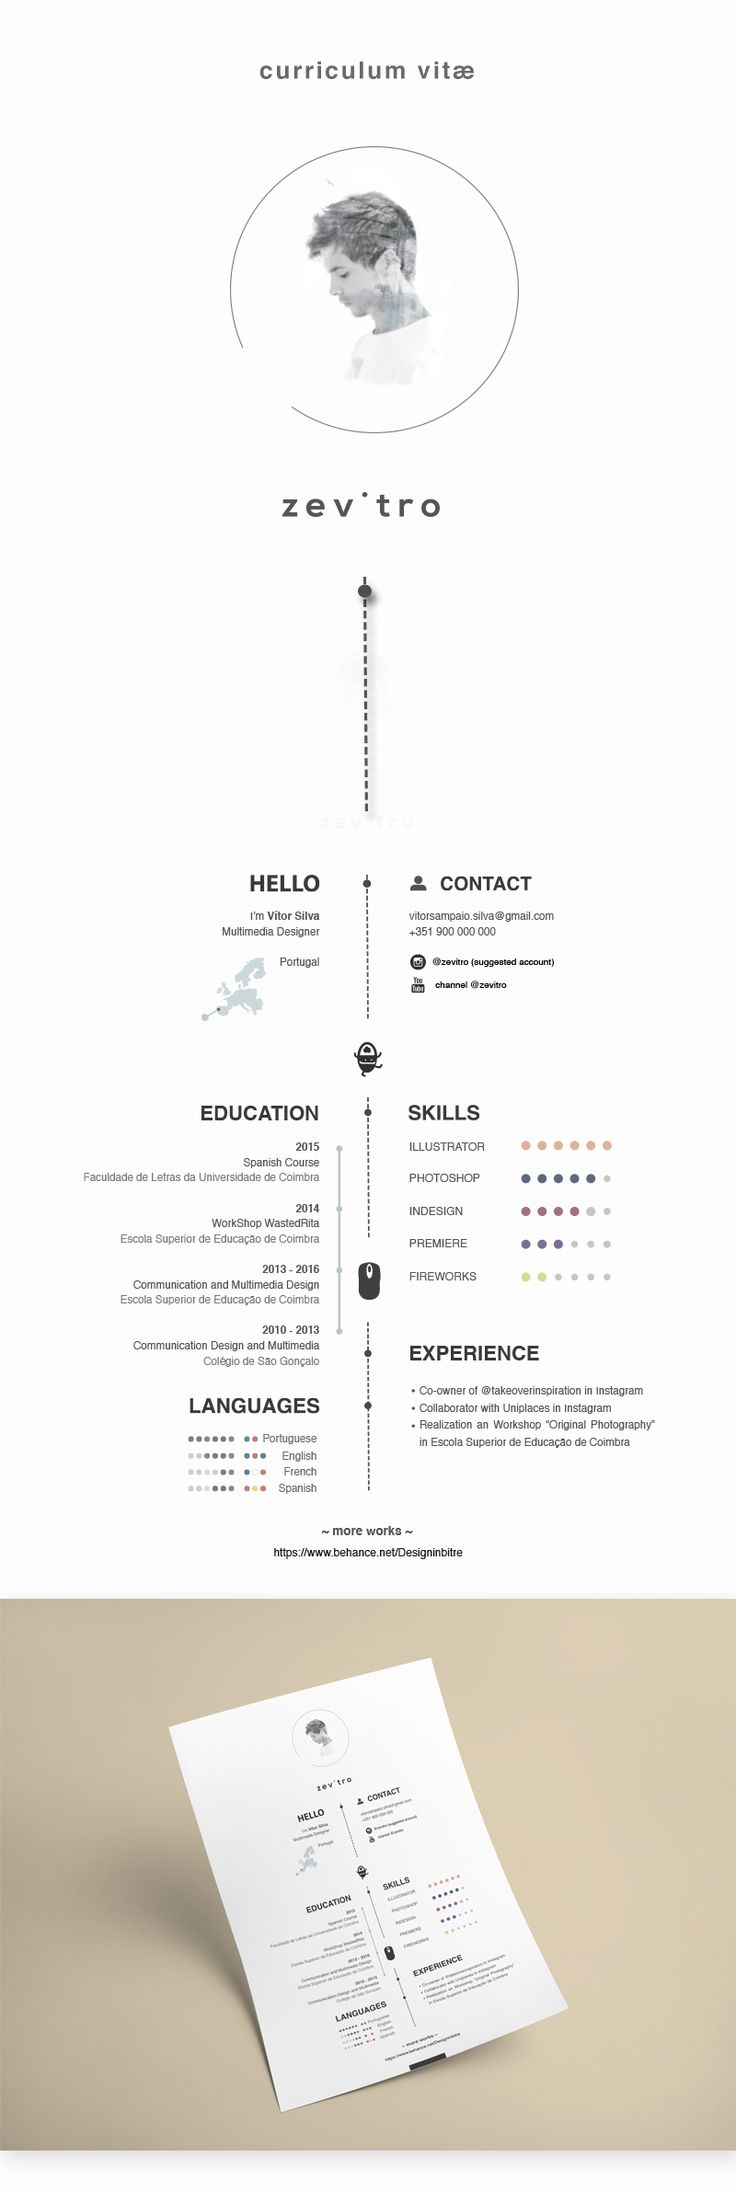 Best Cv Design Images On   Resume Curriculum And